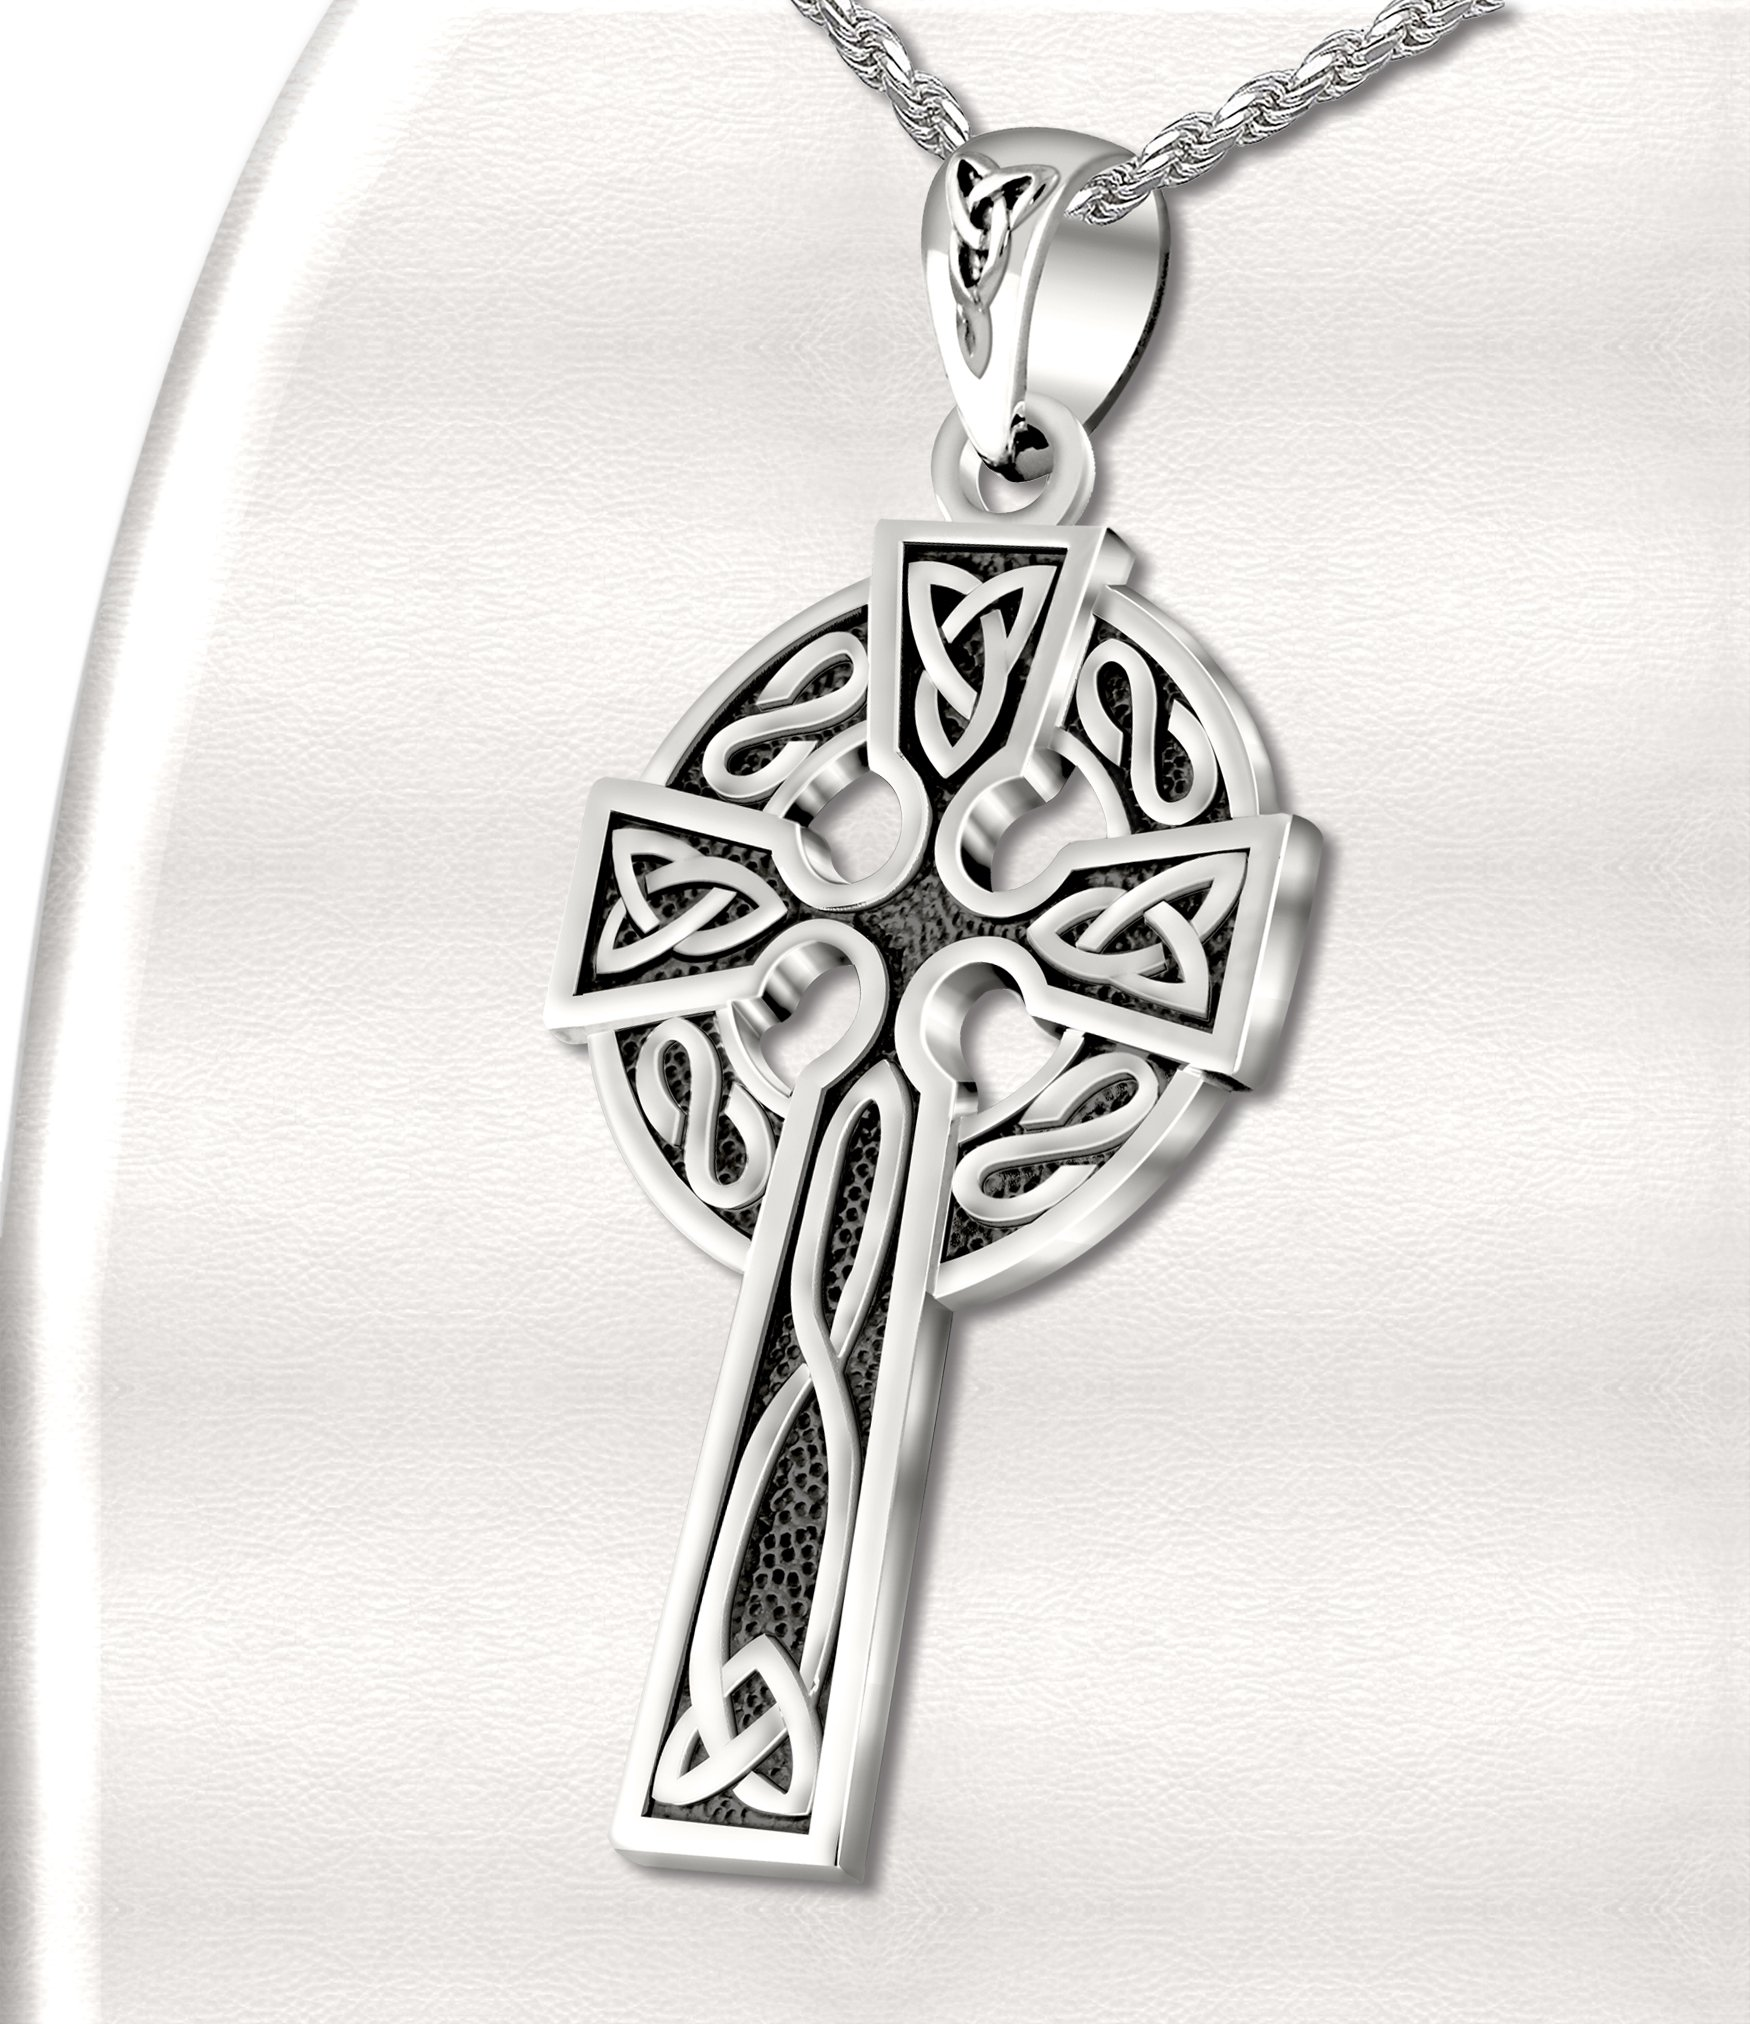 Mens 0.925 Sterling Silver 1.625in Irish Celtic Knot Cross Pendant Antique Finish 3.3mm Rope Necklace, 20in by US Jewels And Gems (Image #4)